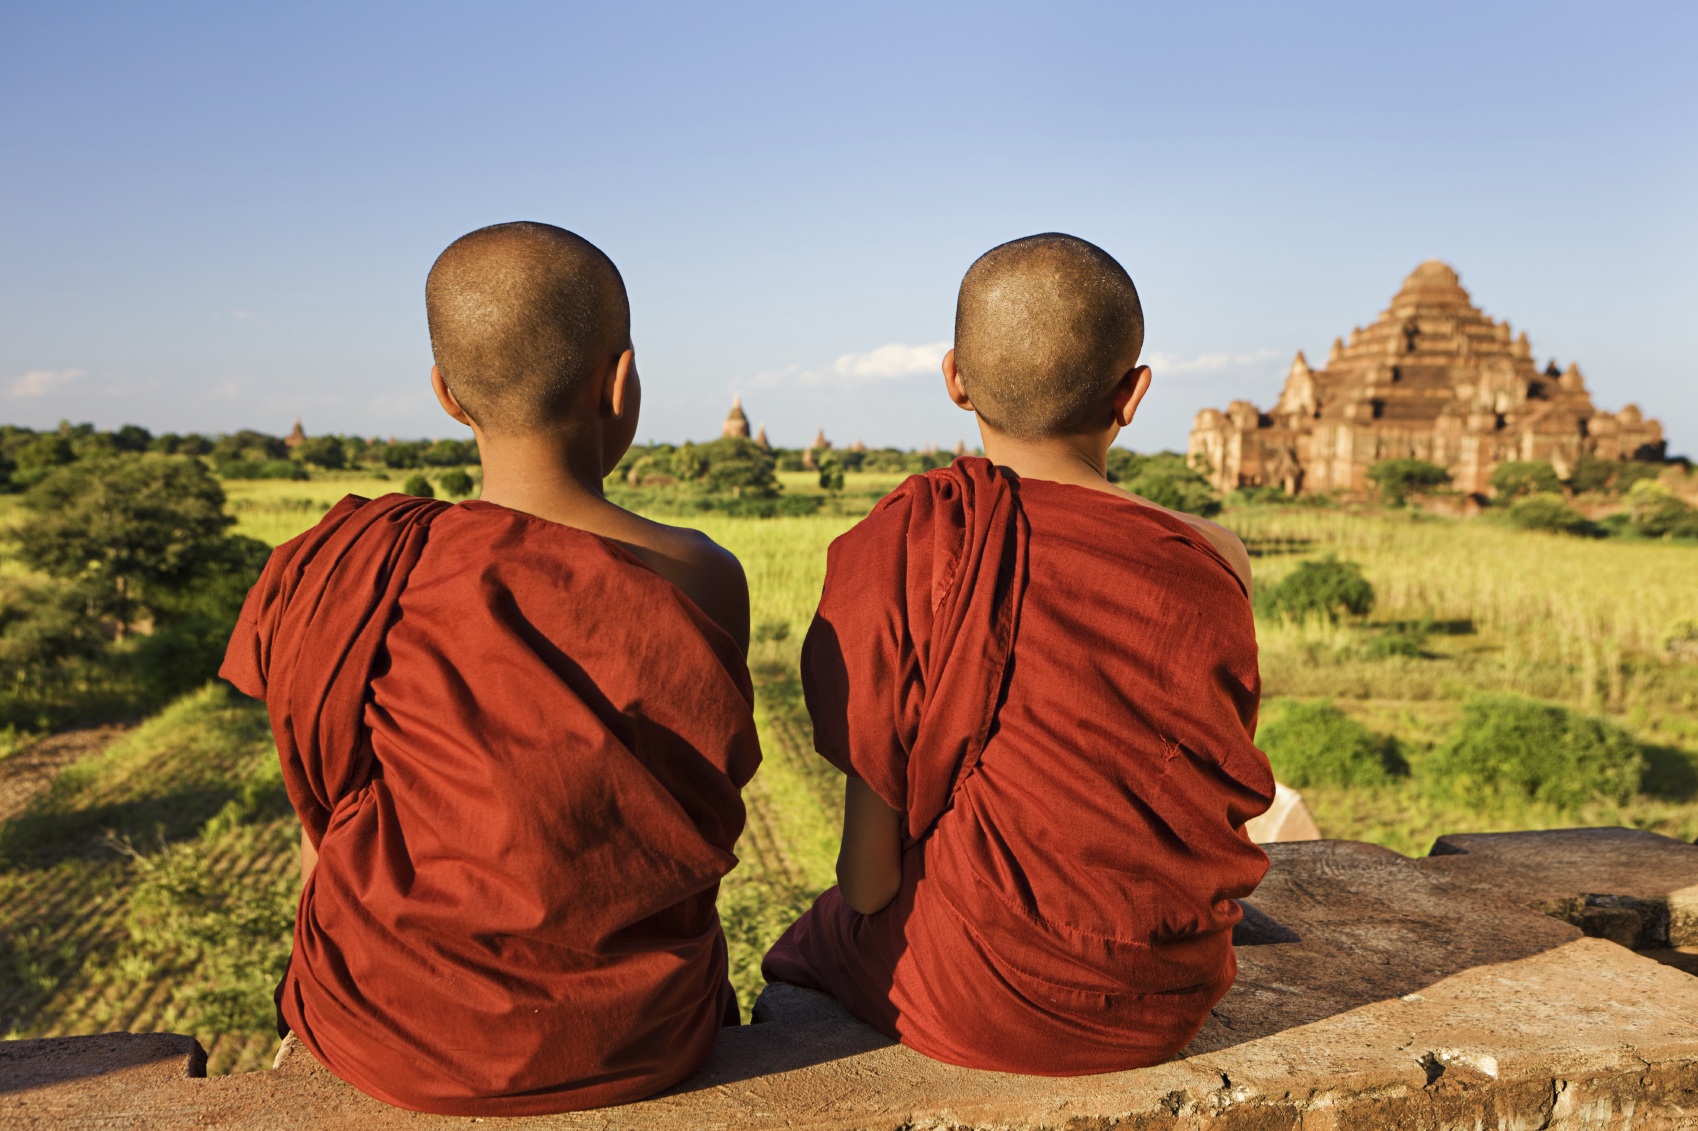 Bagan_Landscape_People_two_young_Monks_iStock_000019720863Medium.jpg